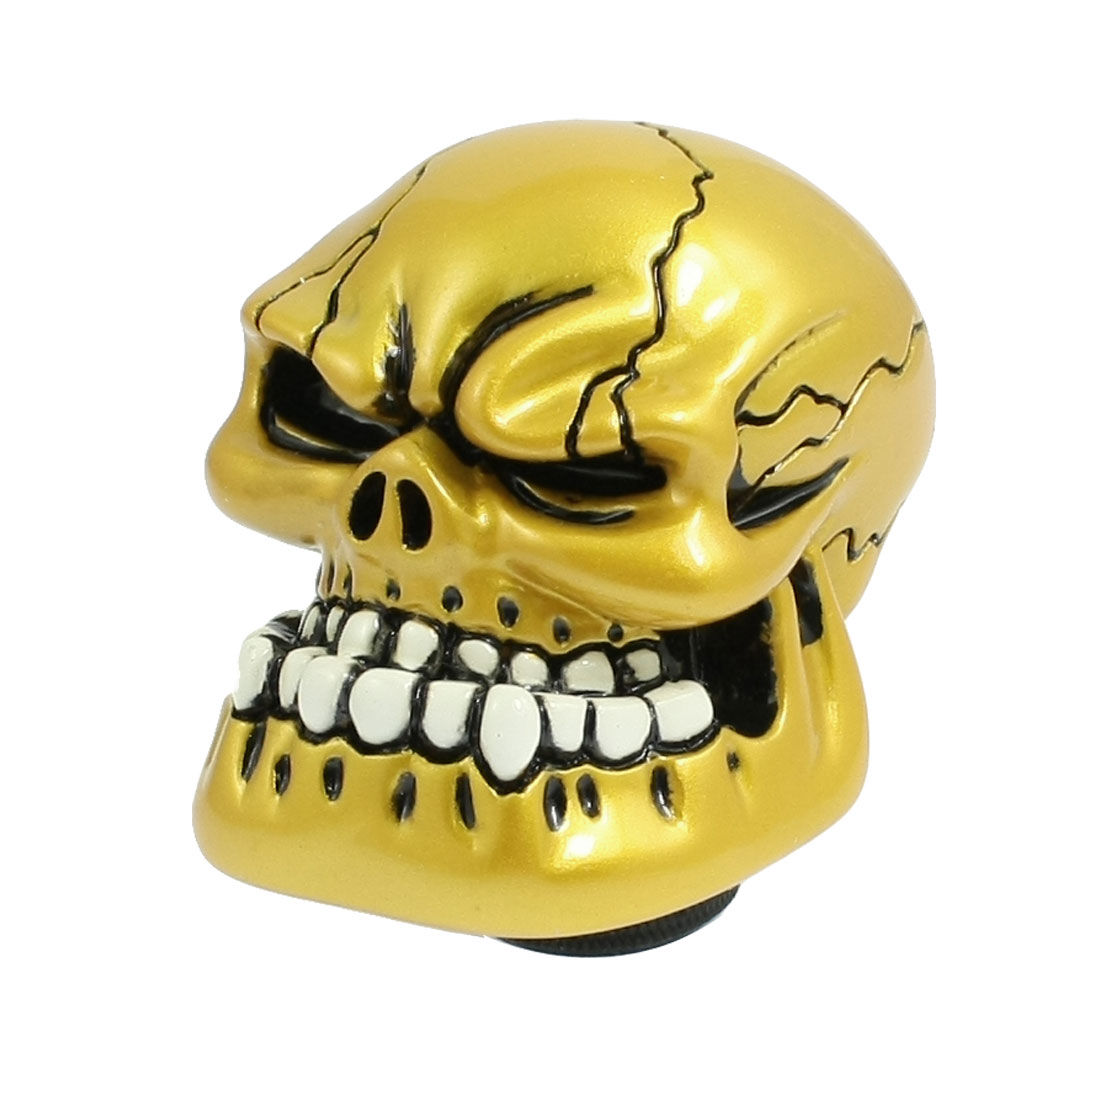 Universal Human Evil Skull Head Auto Car Manual Gear Shift Lever Knob Gold Tone